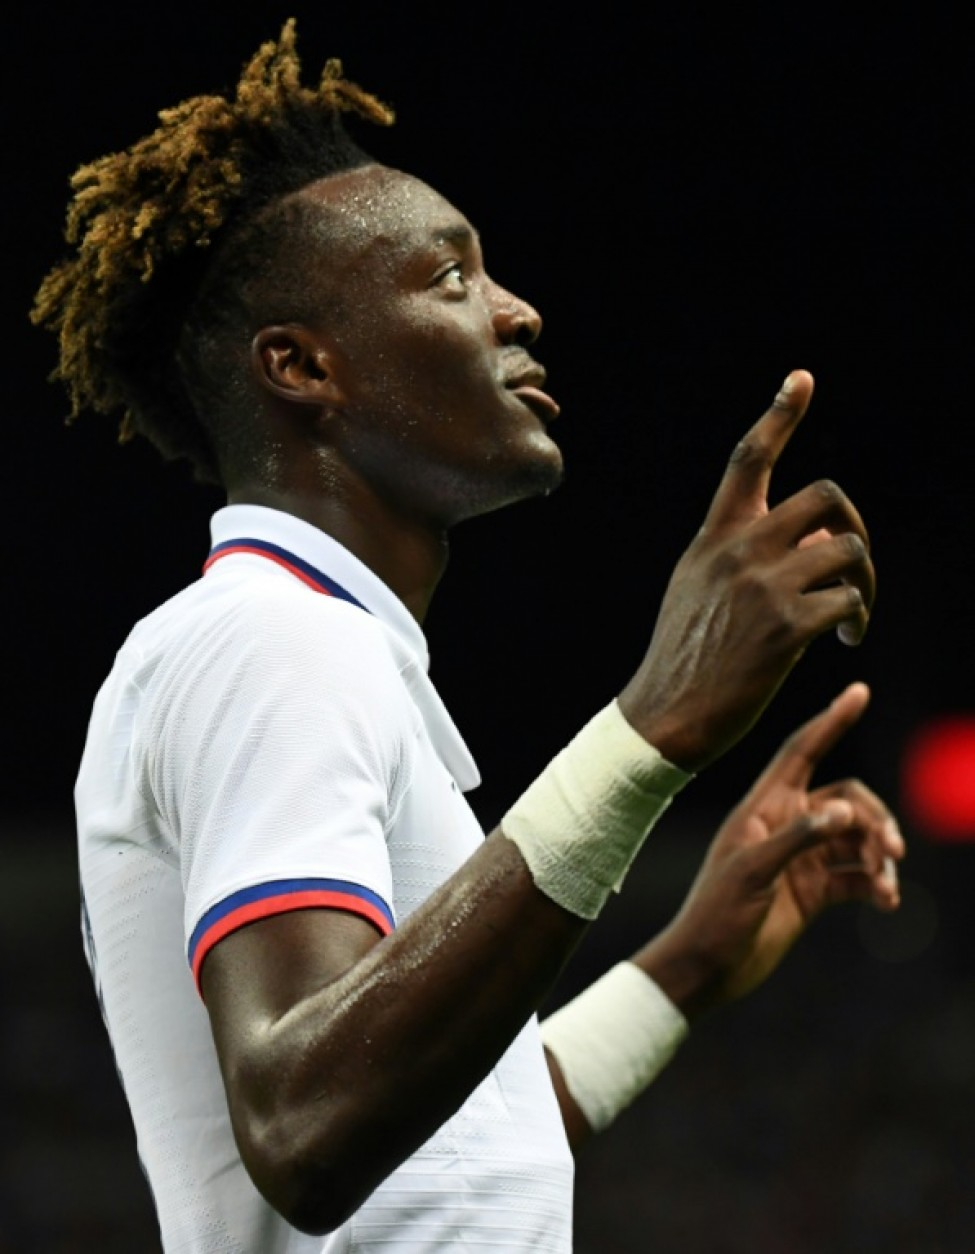 Frank Lampard is keen to give young players like Tammy Abraham a chance to shine